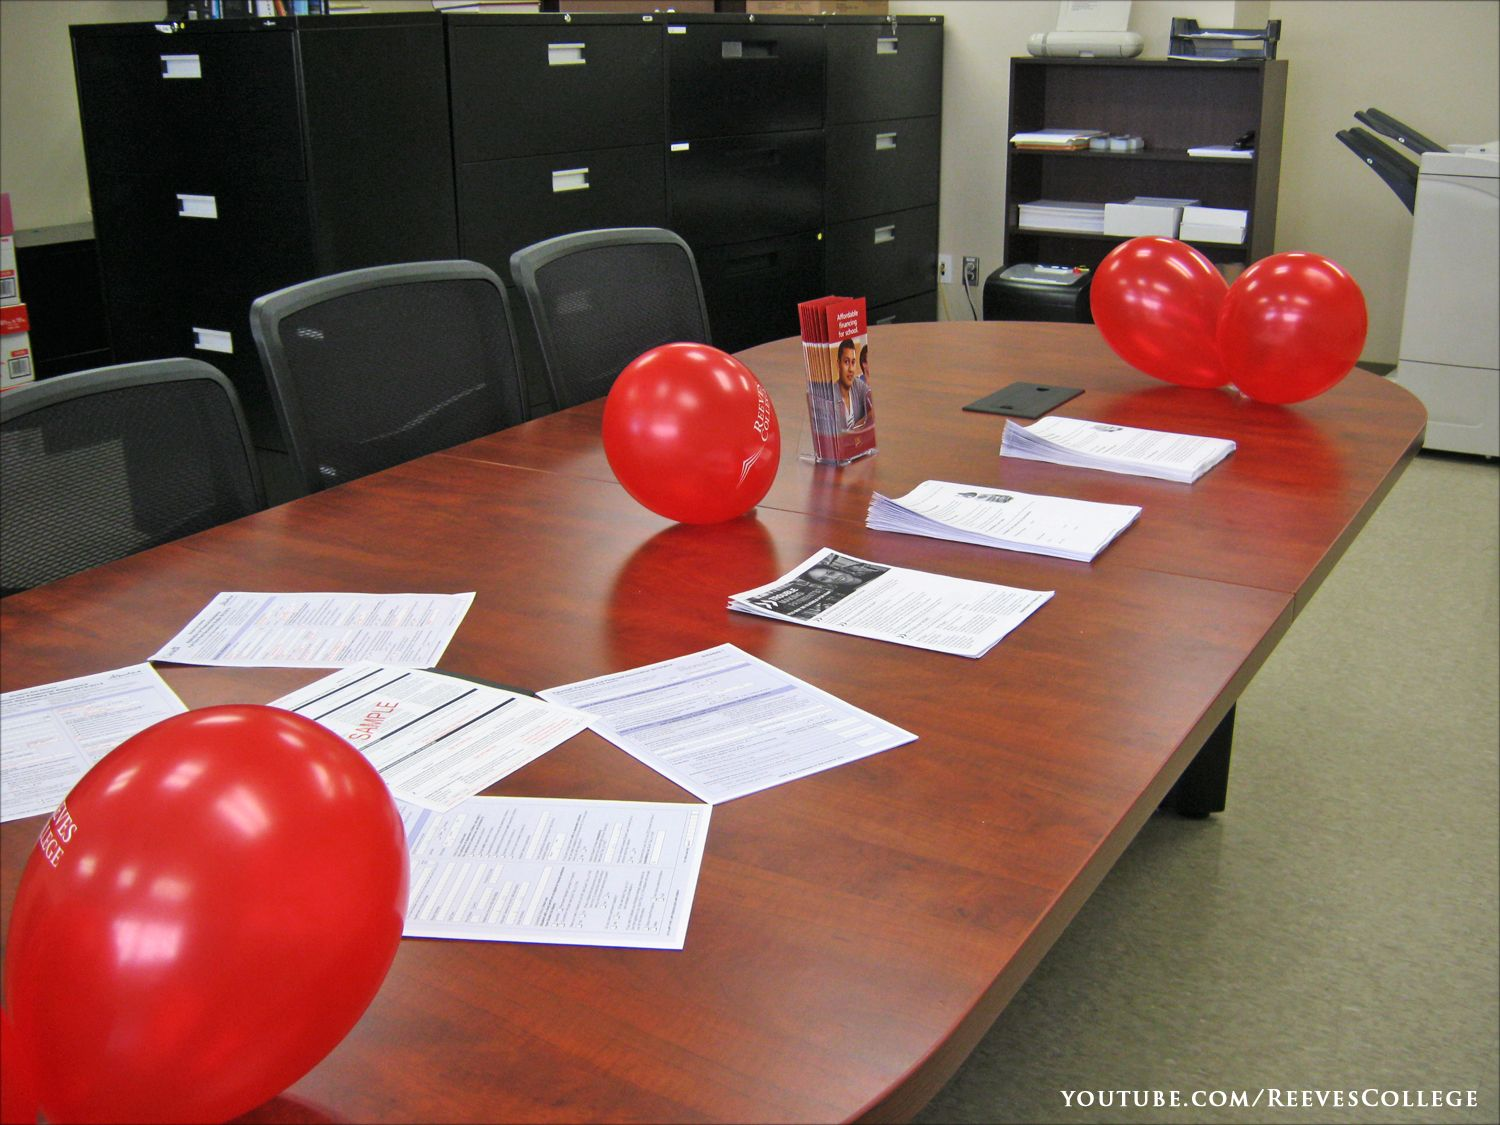 Reeves College, Edmonton City Centre Open House on September 5, 2013 - Red Balloons on the Table Subscribe to the Reeves College Youtube channel:  http://www.youtube.com/subscription_center?add_user=ReevesCollege #ReevesCollege  #Edmonton #CityCentre #OpenHouse #September5 #2013 #Red #Balloons #Table